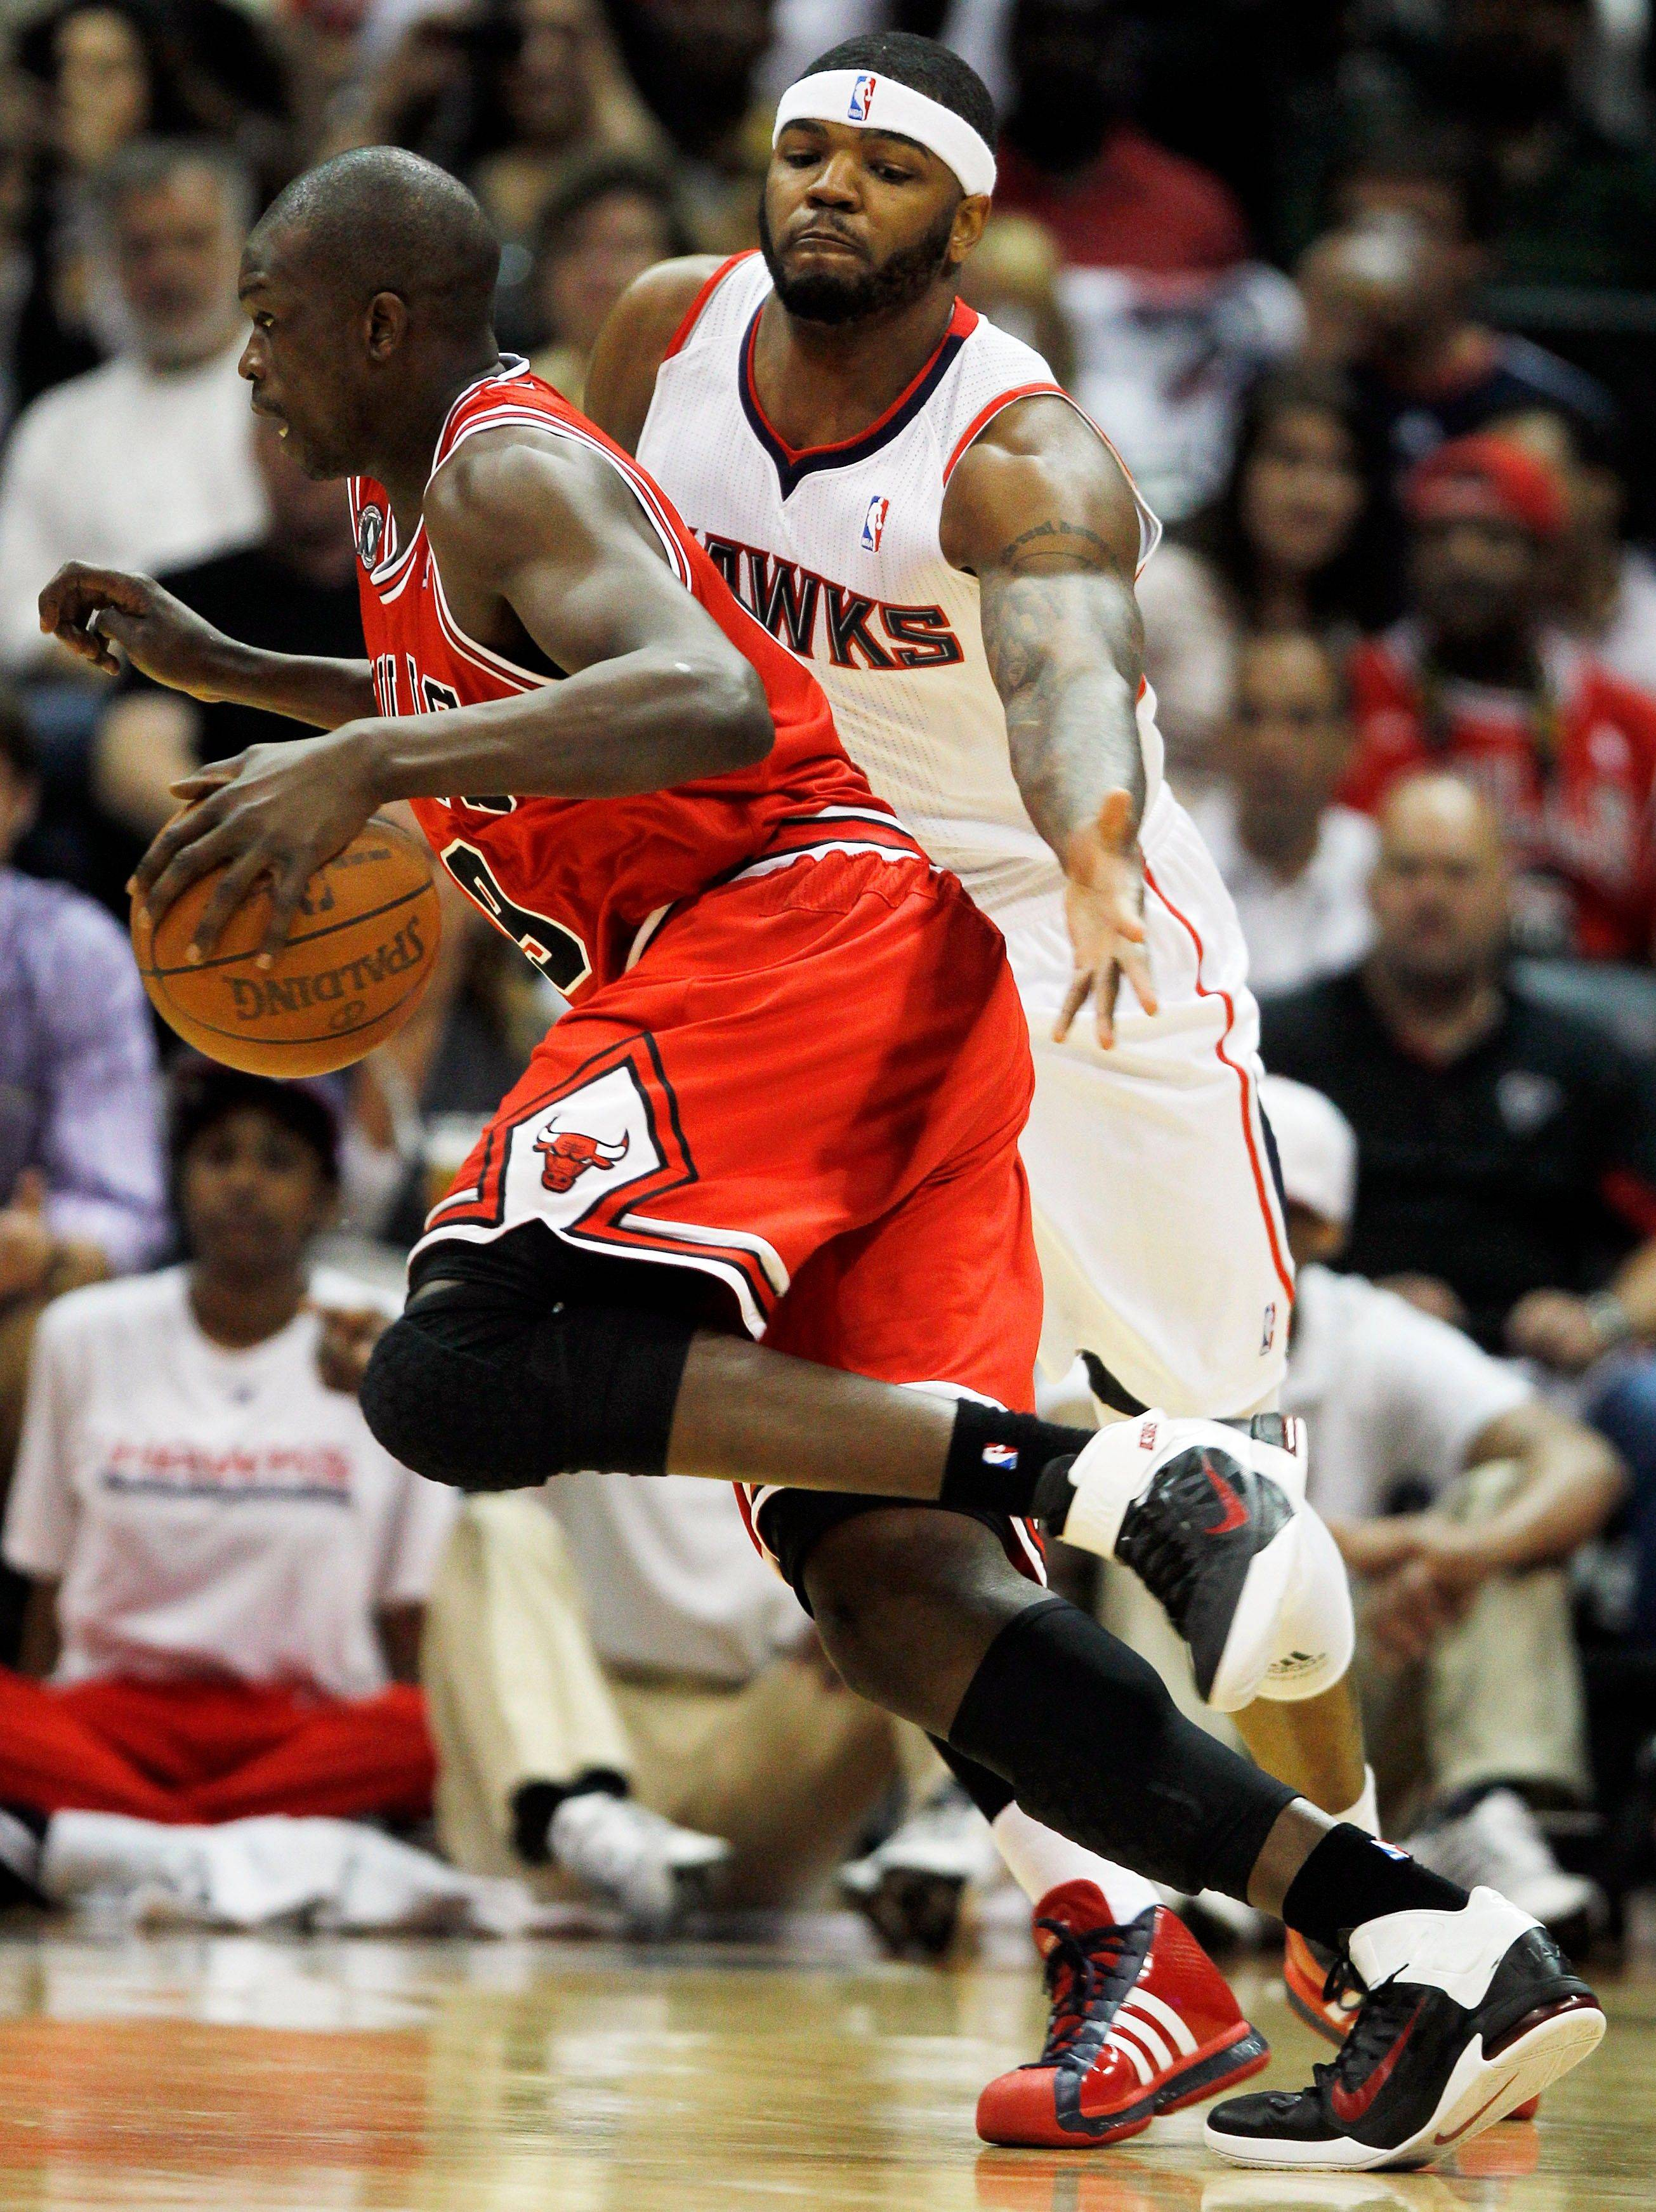 Luol Deng (9) drives past Atlanta Hawks power forward Josh Smith (5) in the first quarter of Game 4.